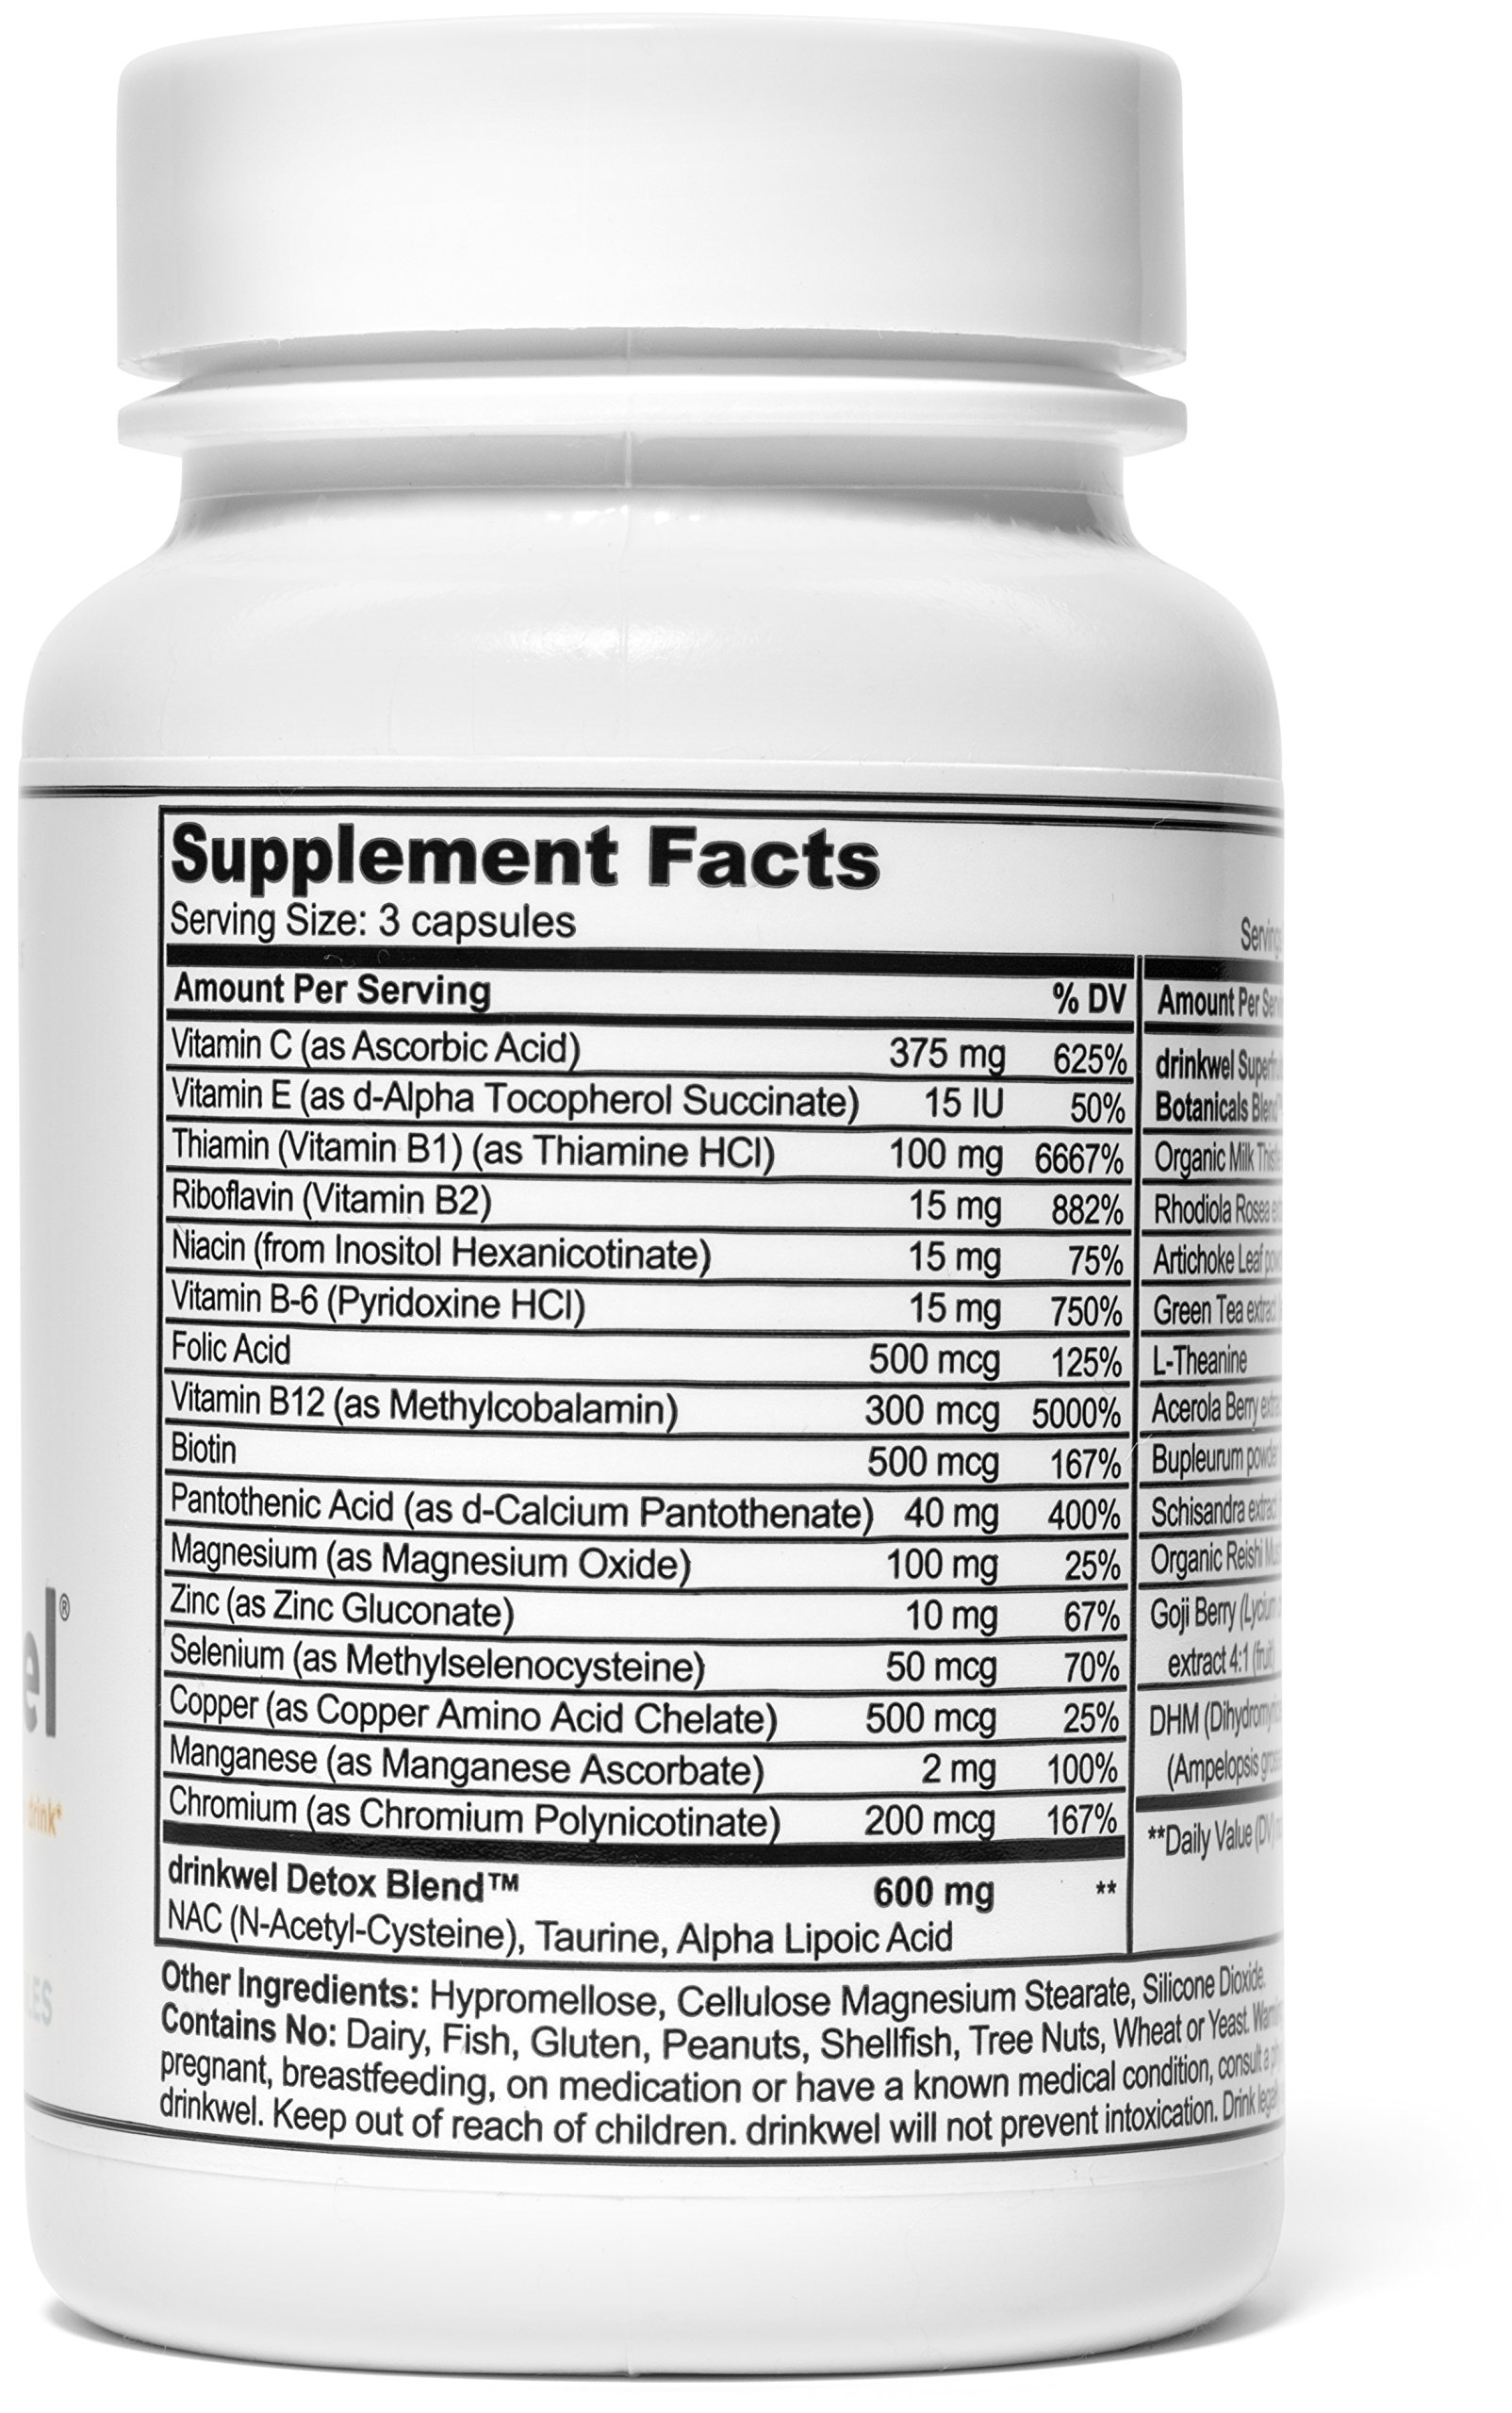 Drinkwel for Hangovers, Nutrient Replenishment & Liver Support (30 Vegetarian Capsules with Organic Milk Thistle, N-acetyl Cysteine, Alpha Lipoic Acid, and DHM) (Travel Size Bottle) by drinkwel (Image #3)